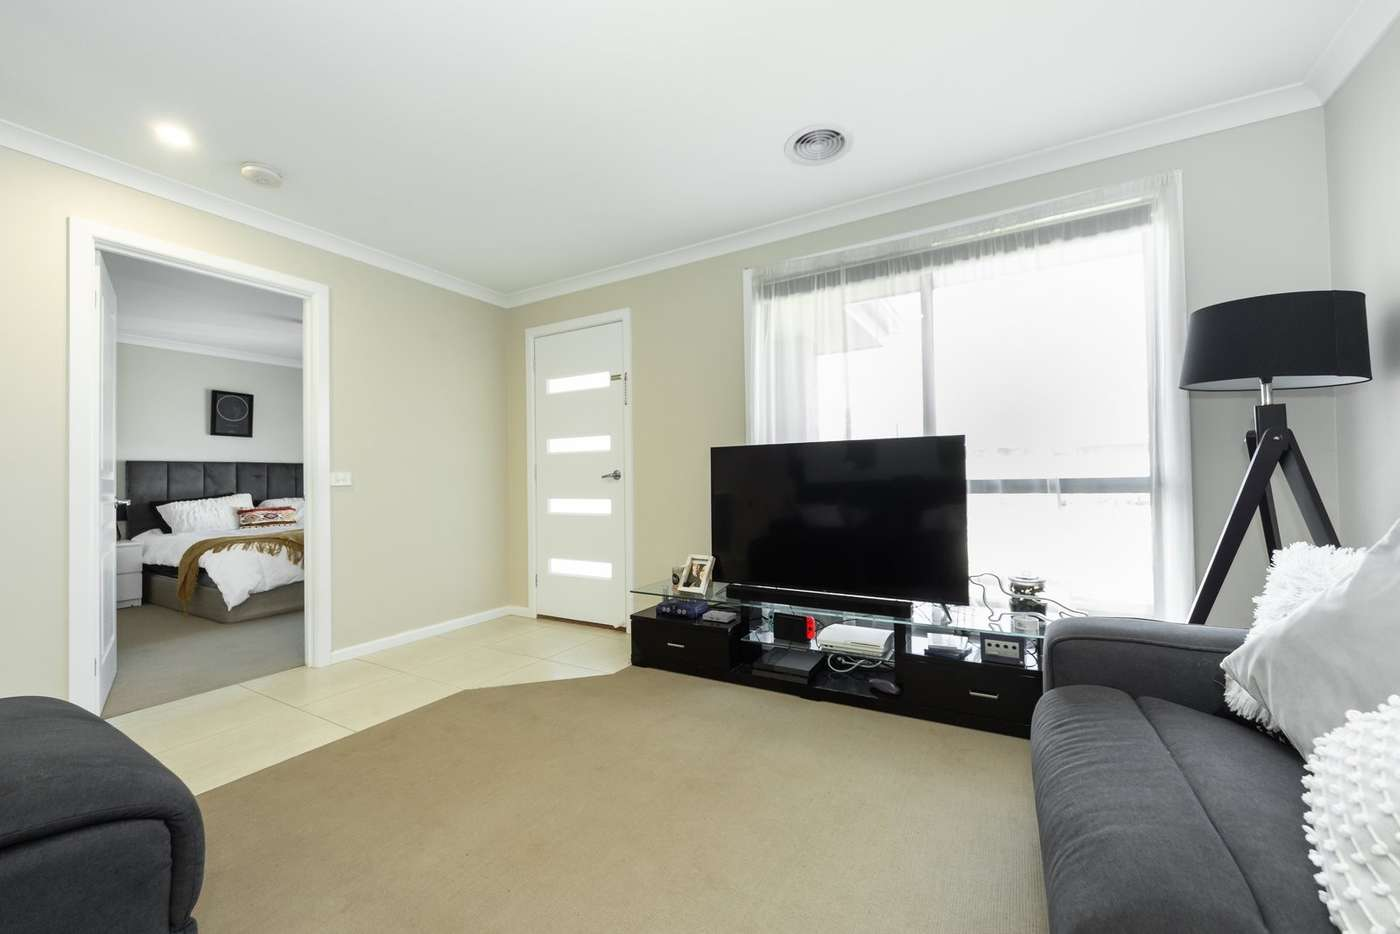 Fifth view of Homely house listing, 4 Ellora Court, Lavington NSW 2641